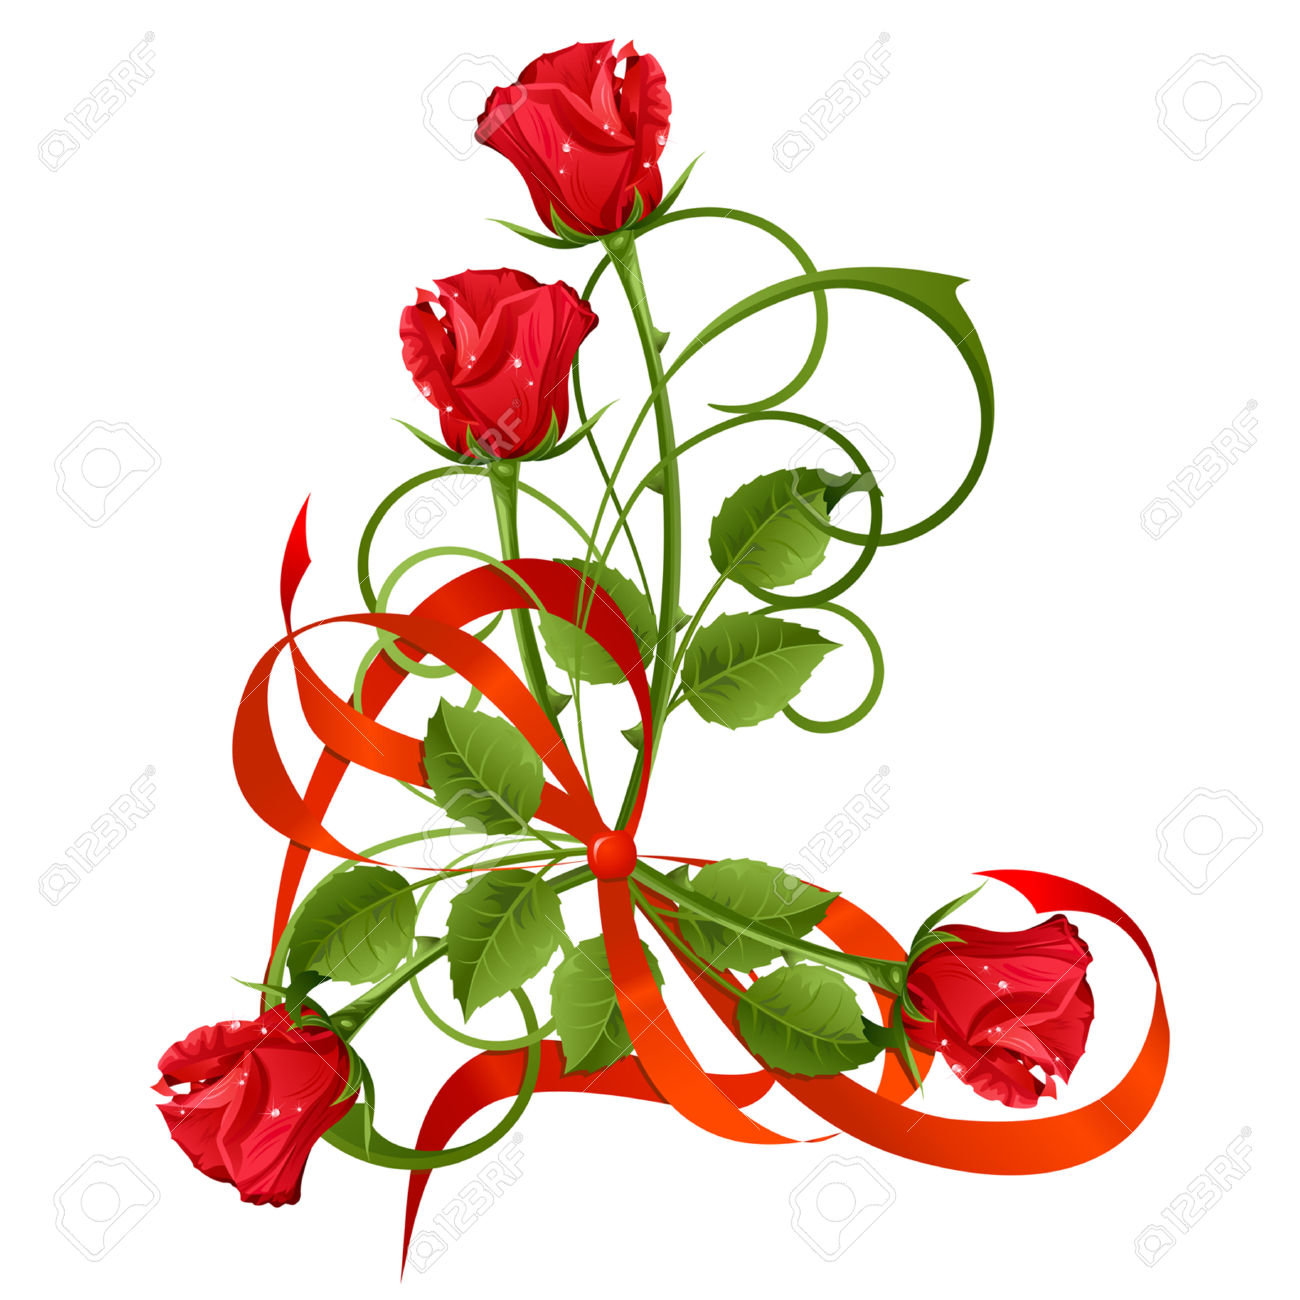 clipart bouquet of red roses - Clipground